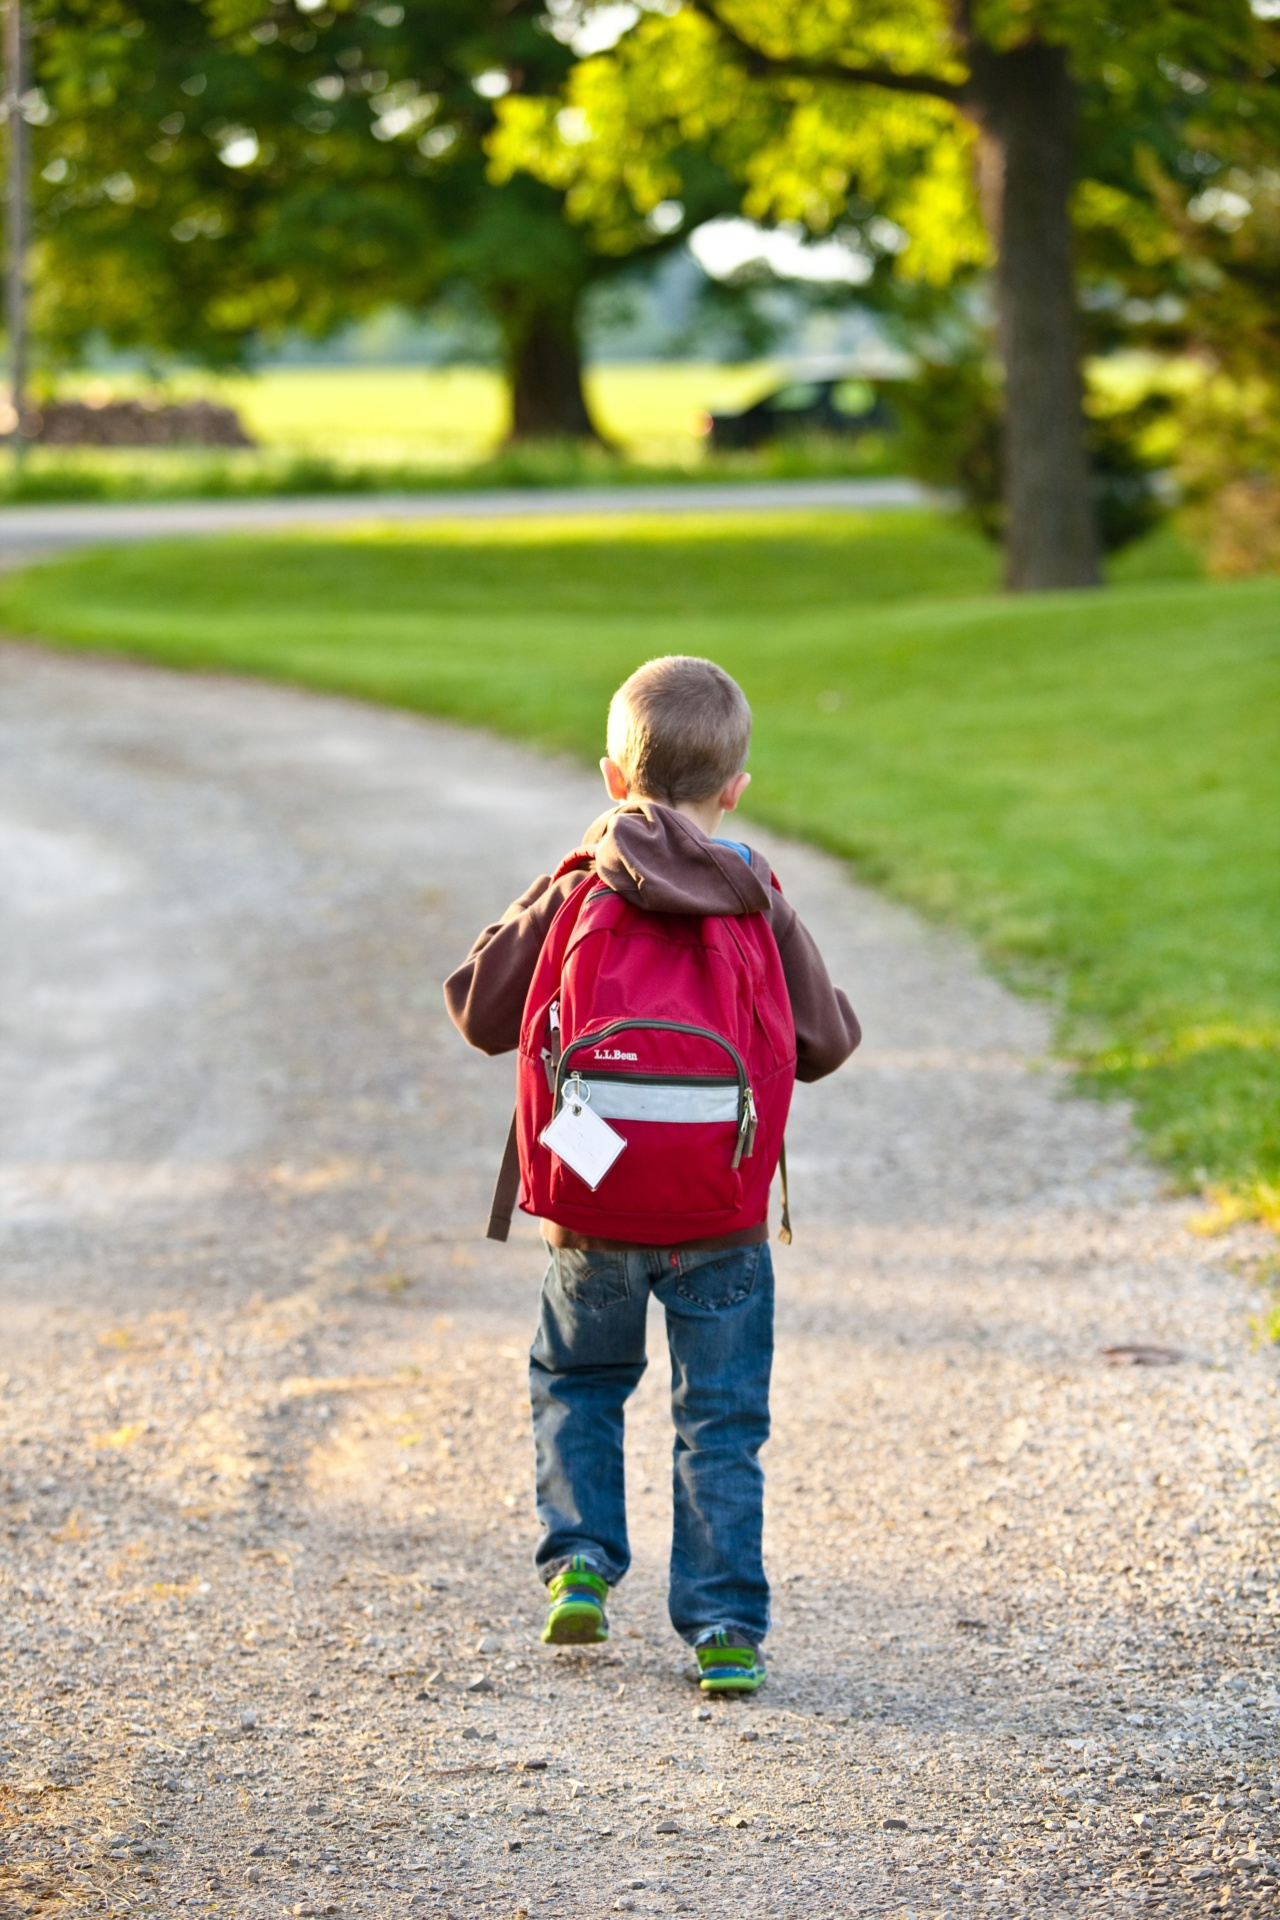 Challenges Facing Students in Rural Districts